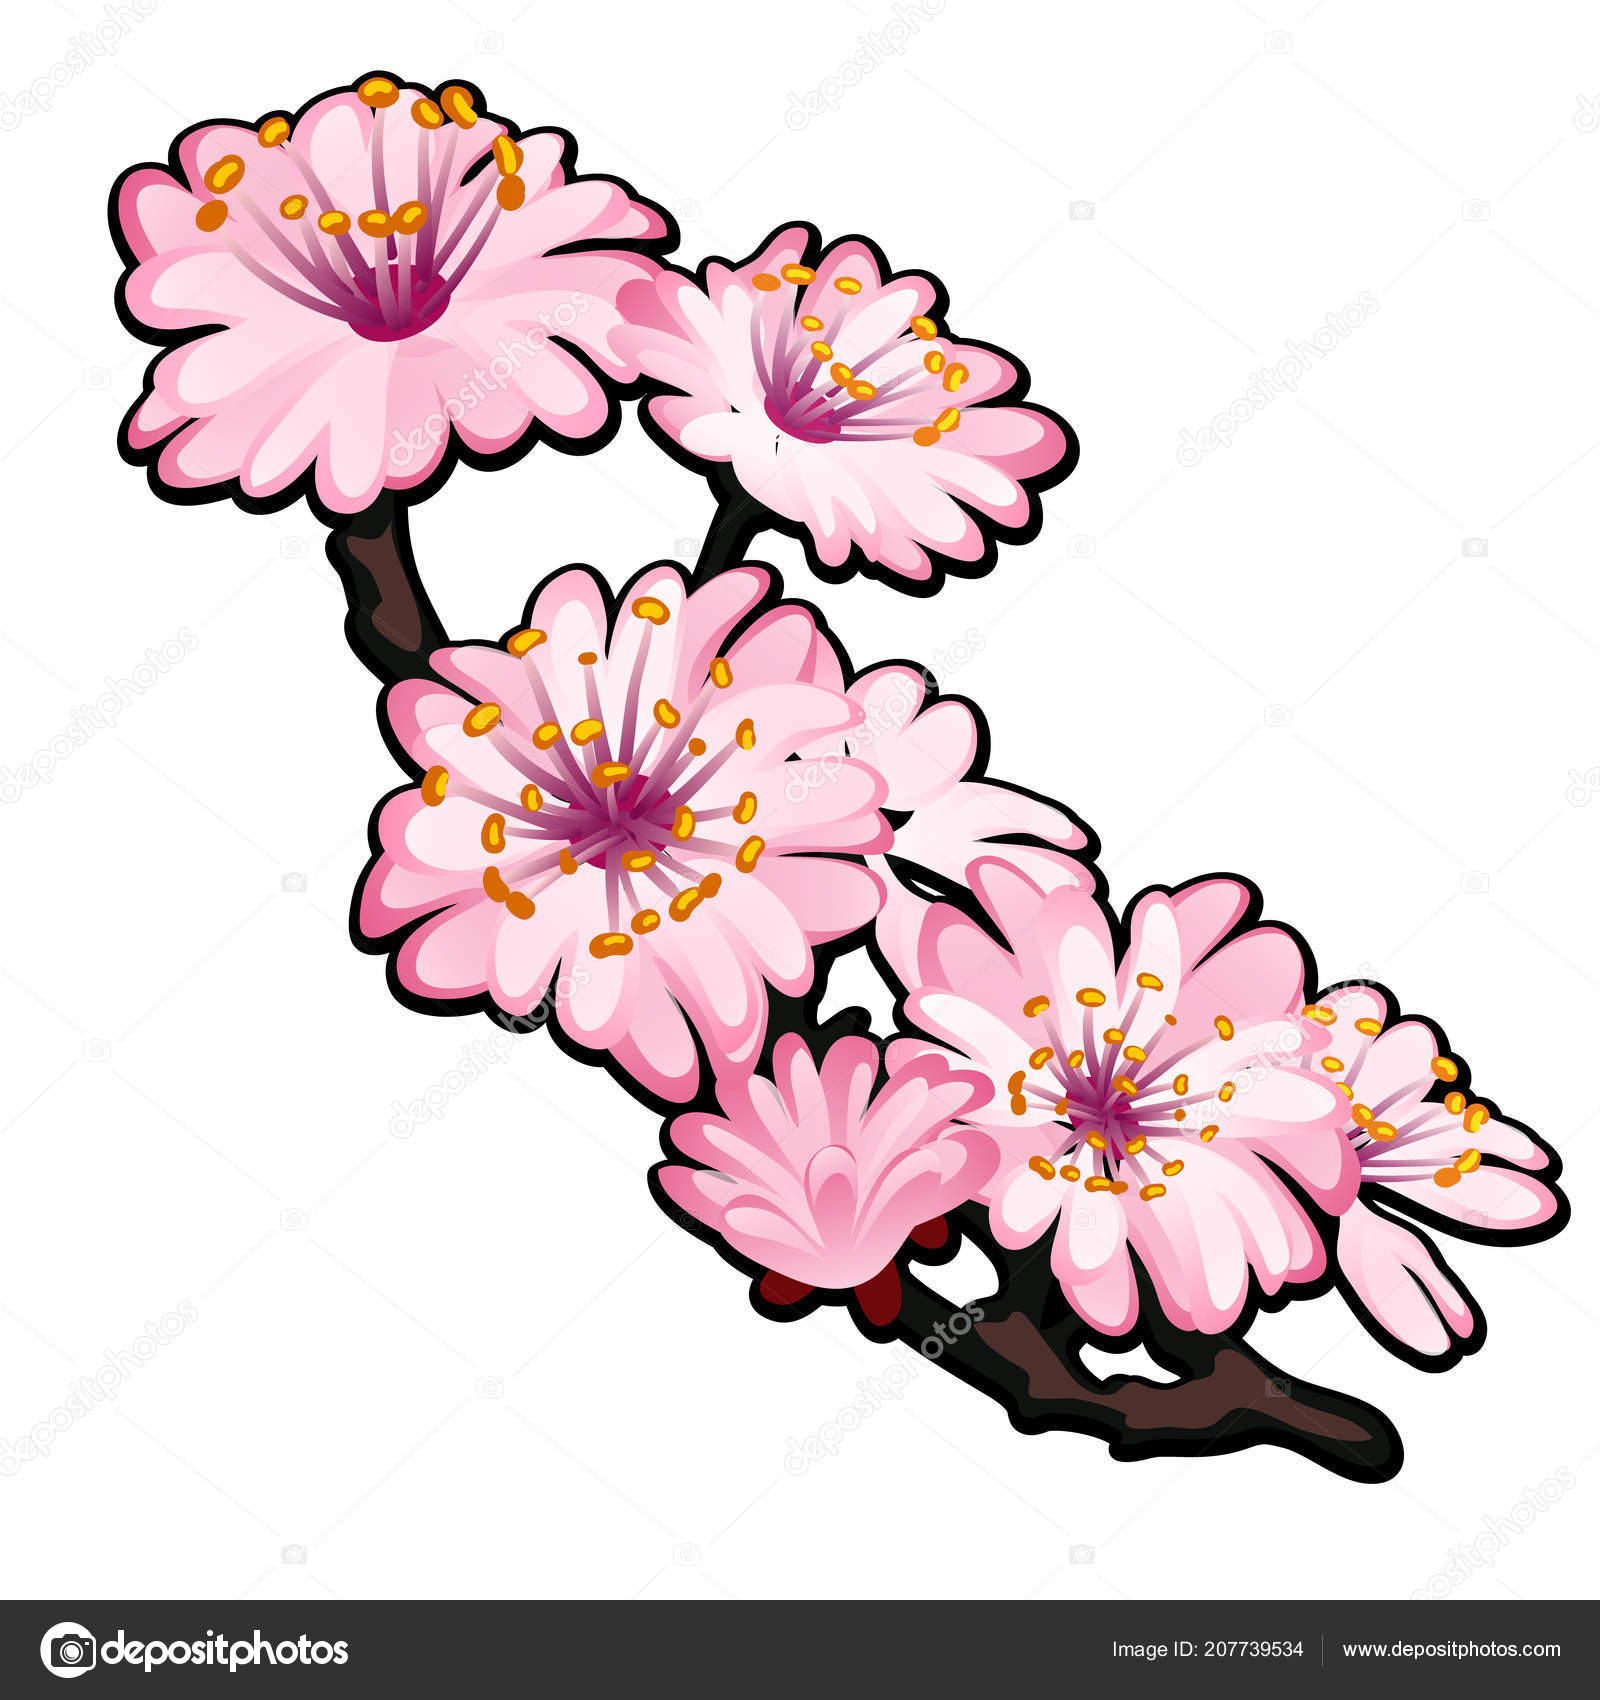 Blossoming branch of a tree pink flowers in spring isolated on white blossoming branch of a tree pink flowers in spring isolated on white background vector cartoon close up illustration vector by antonlunkov mightylinksfo